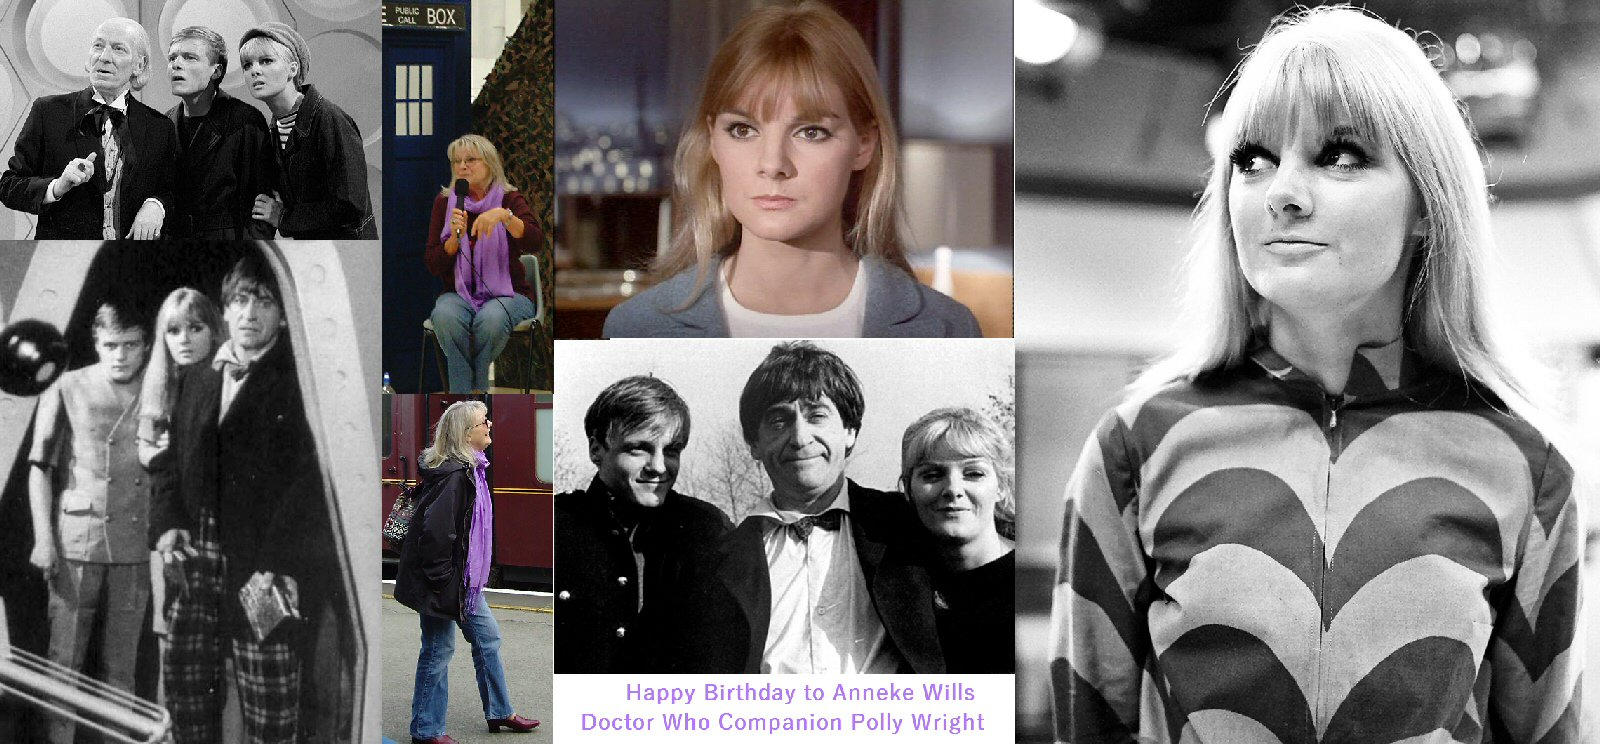 Happy Birthday to Anneke Wills today! - Doctor Who Companion Polly Wright